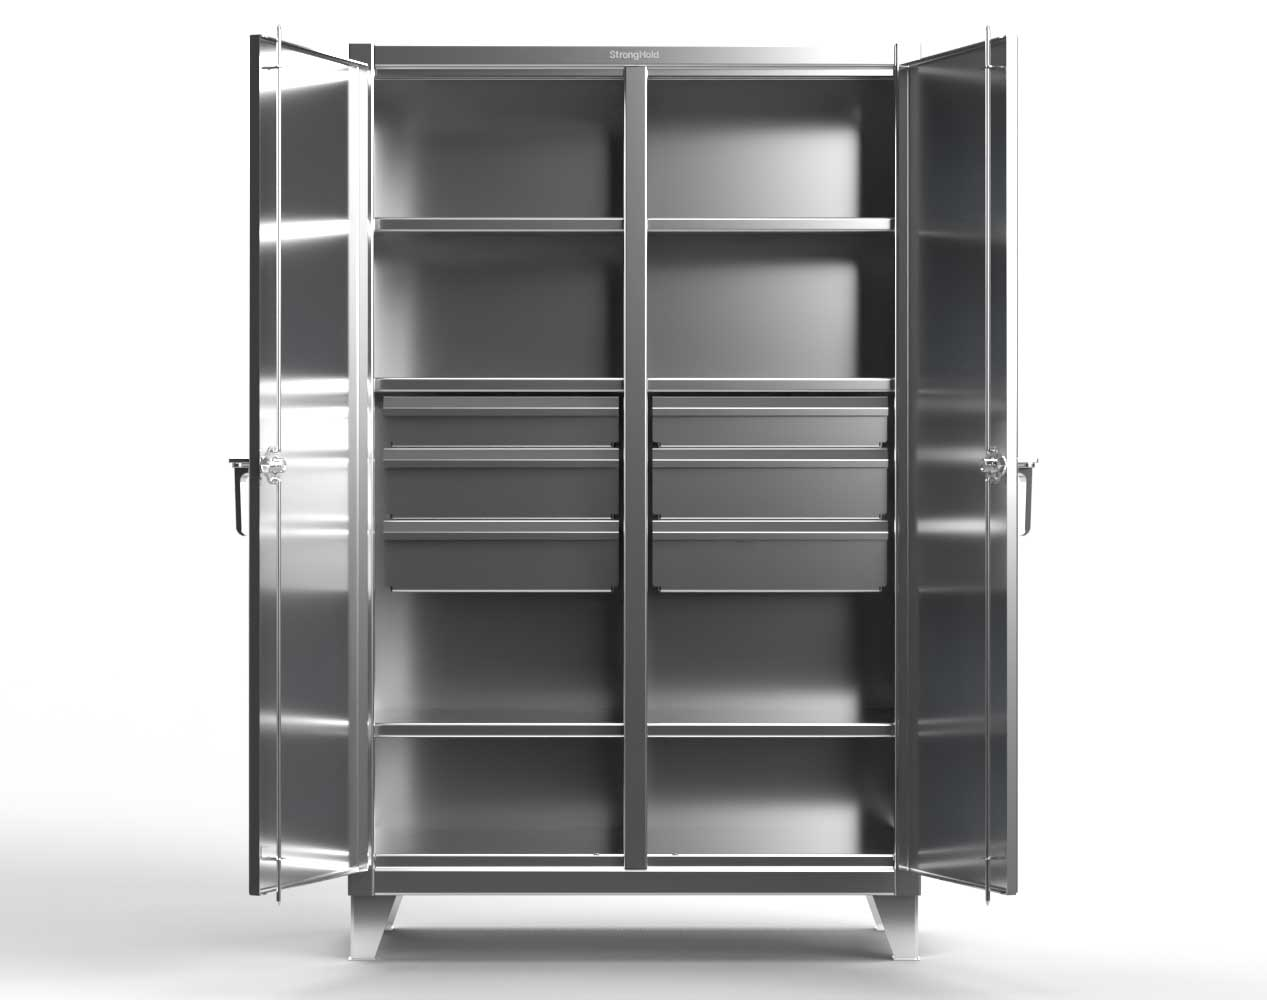 Extra Heavy Duty 12 GA Stainless Steel Double Shift Cabinet with 10 Drawers, 6 Shelves – 60 In. W x 24 In. D x 78 In. H